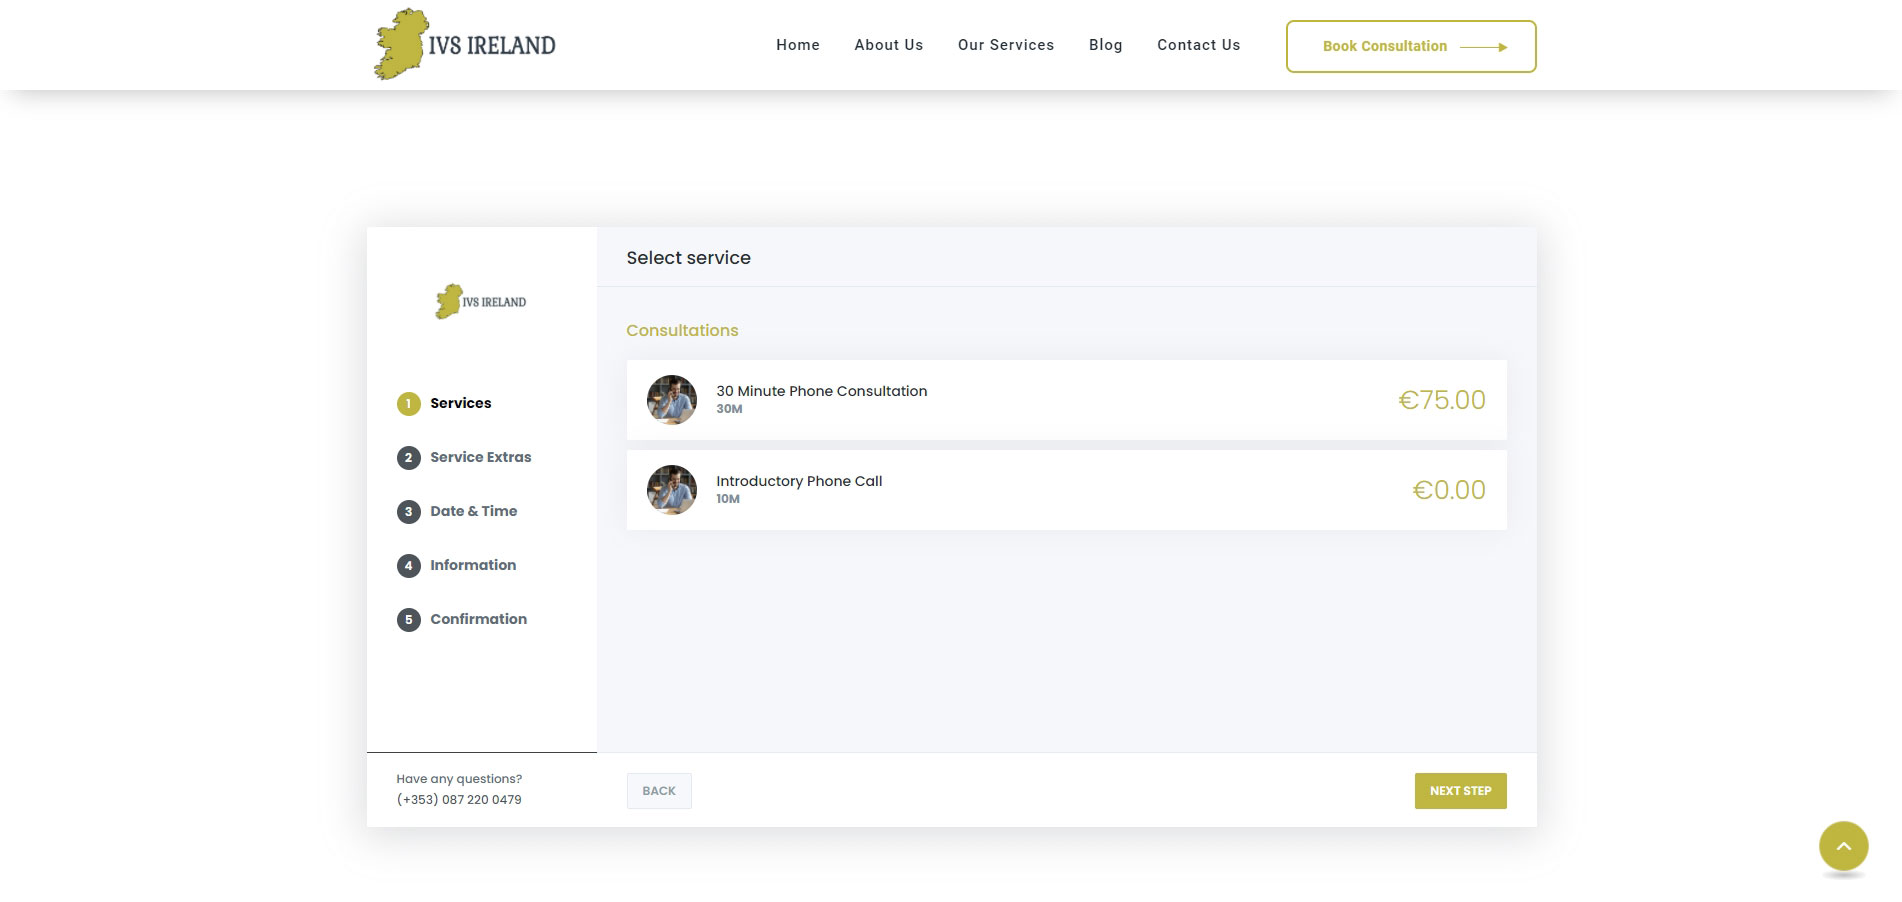 ivs ireland by ck website design - full screen shot of the ivs ireland Booking System